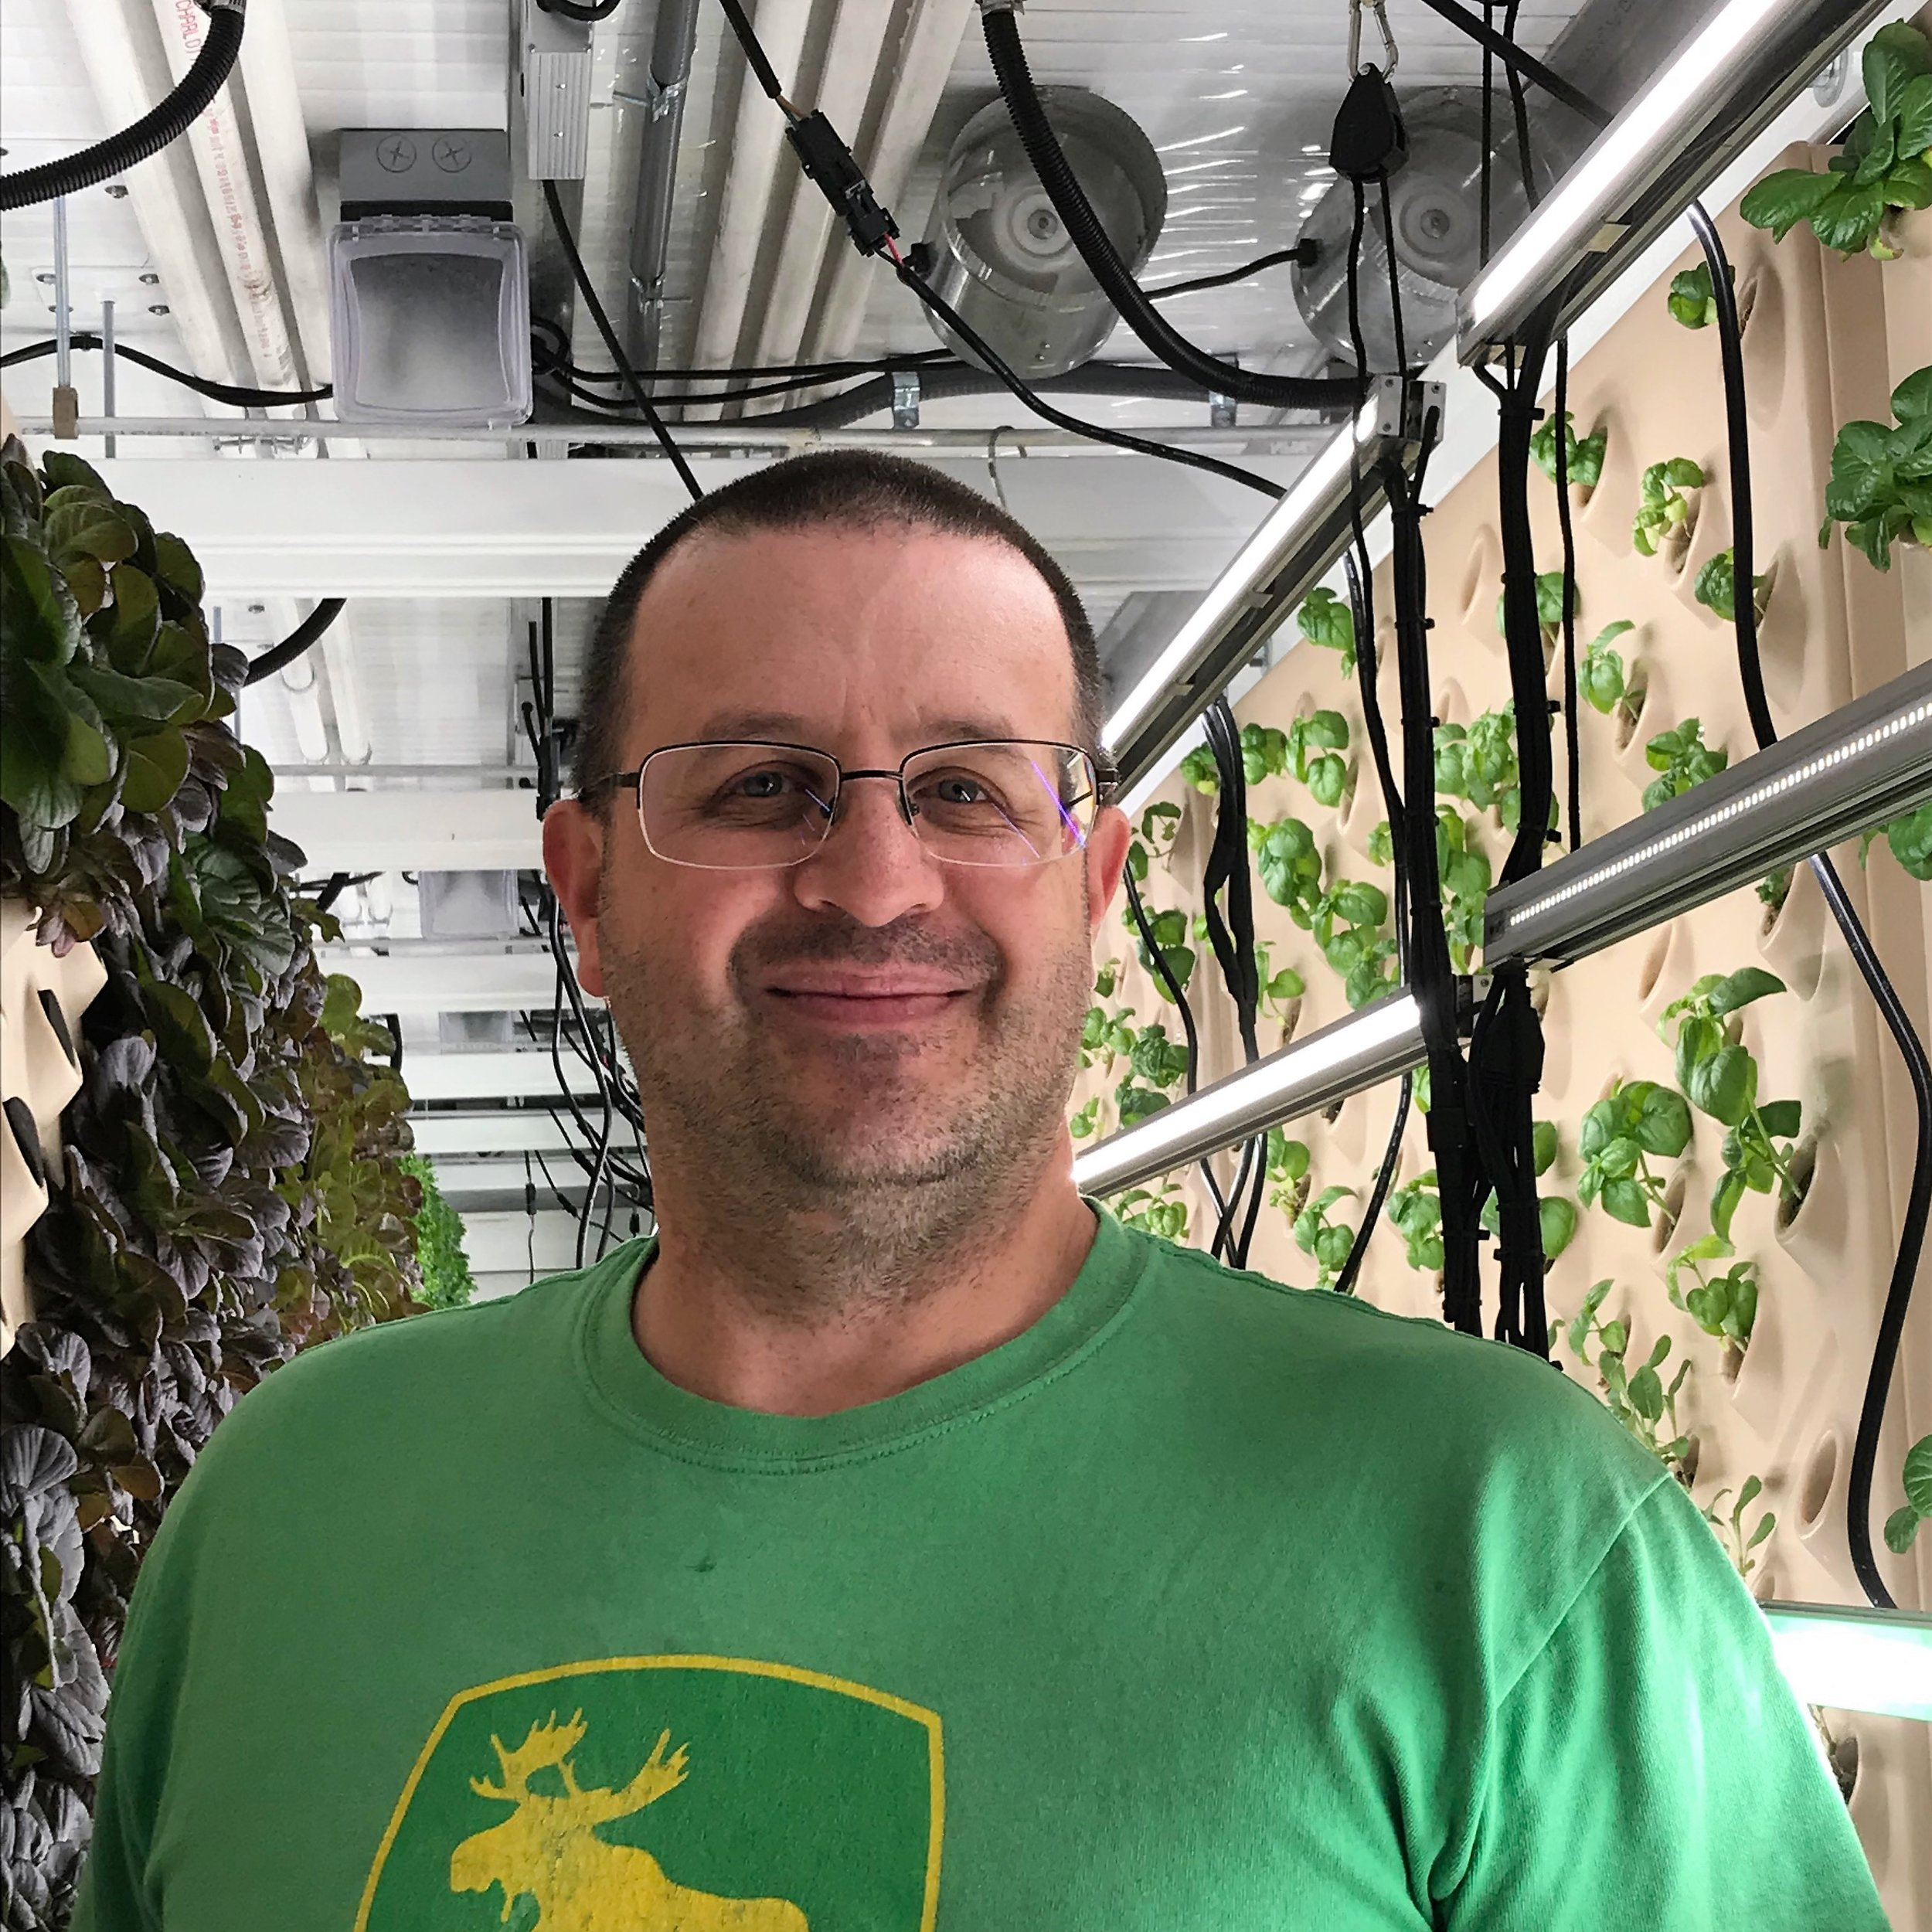 In Mendenhall Valley, Allen Butner is using innovative farming techniques to grow local greens for Southeast Alaska consumers.